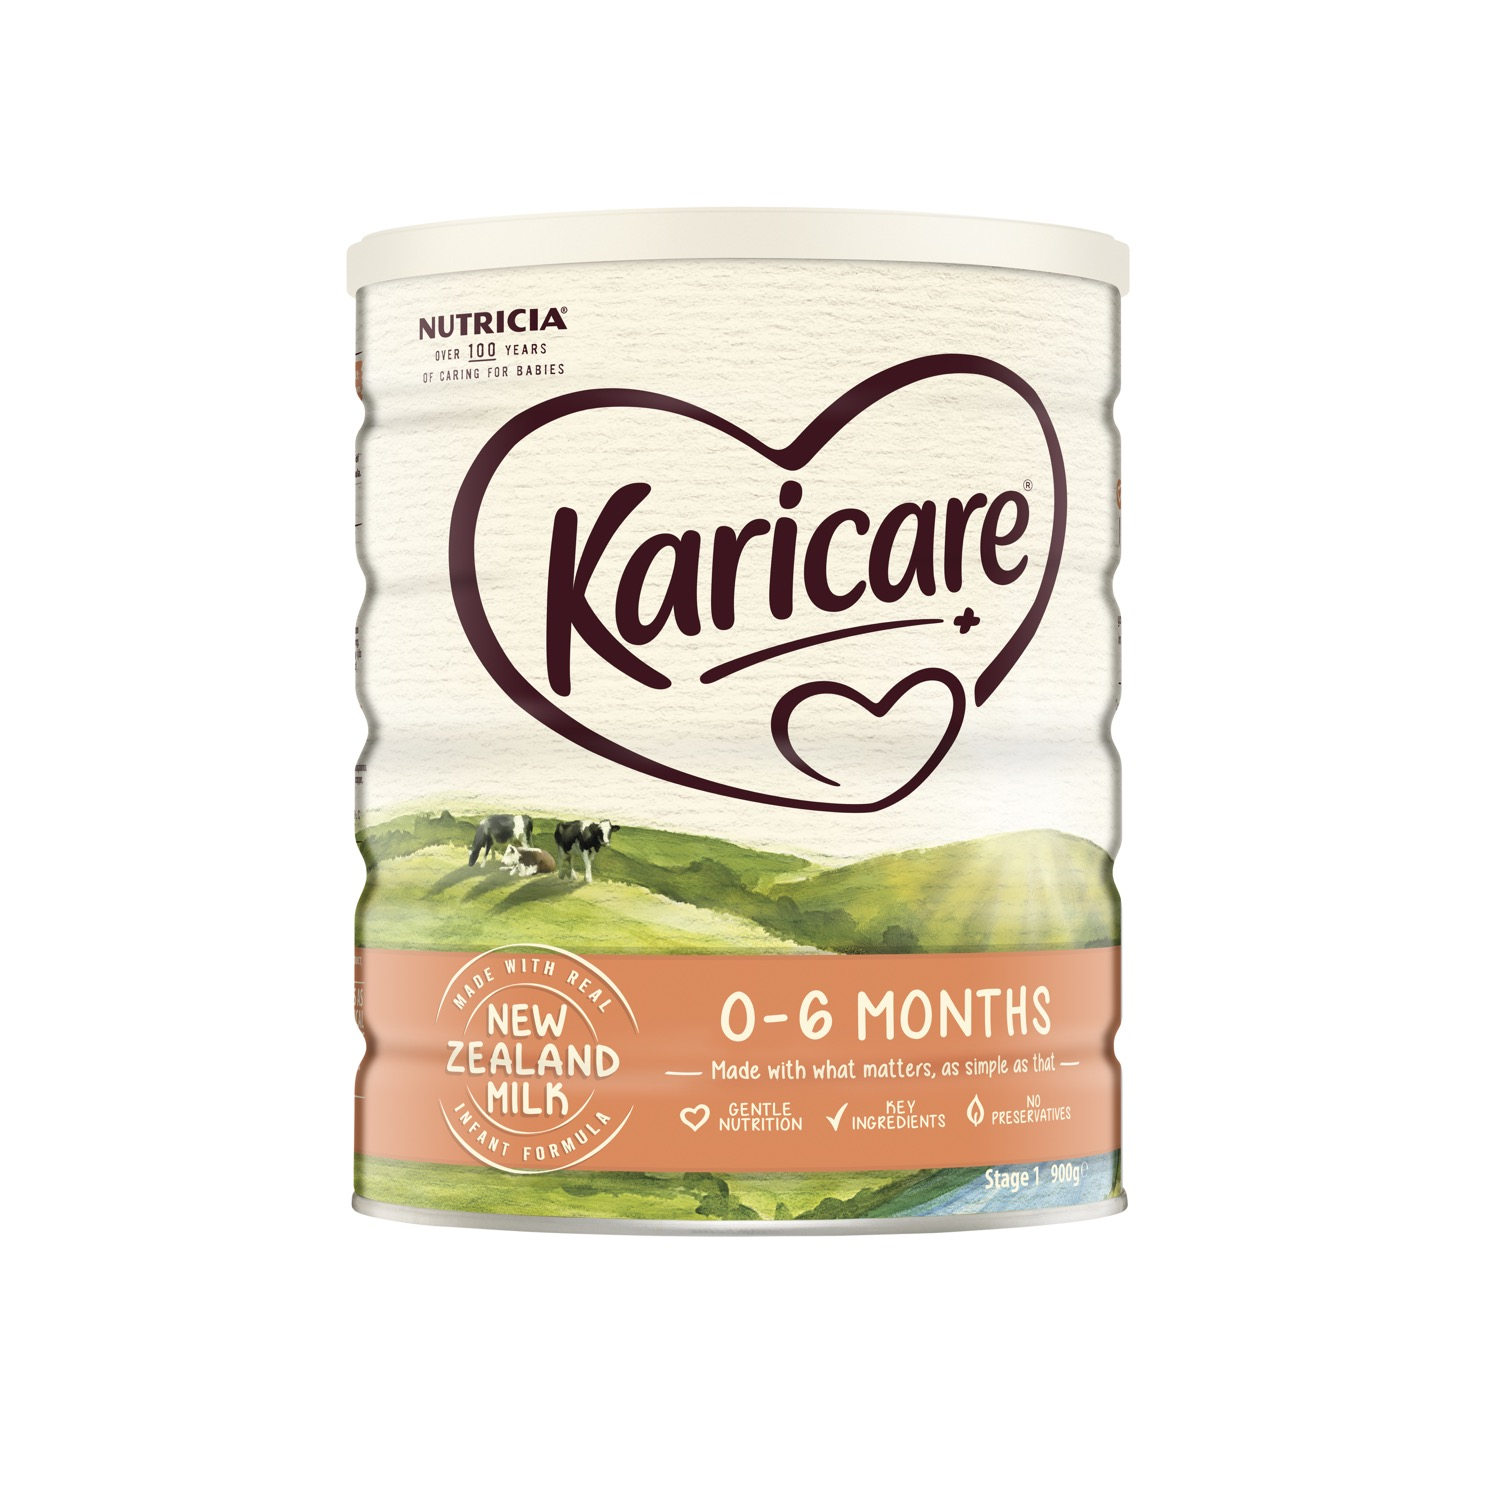 Buy Karicare+ 1 Infant Formula From Birth 0-6 Months 900g Online at